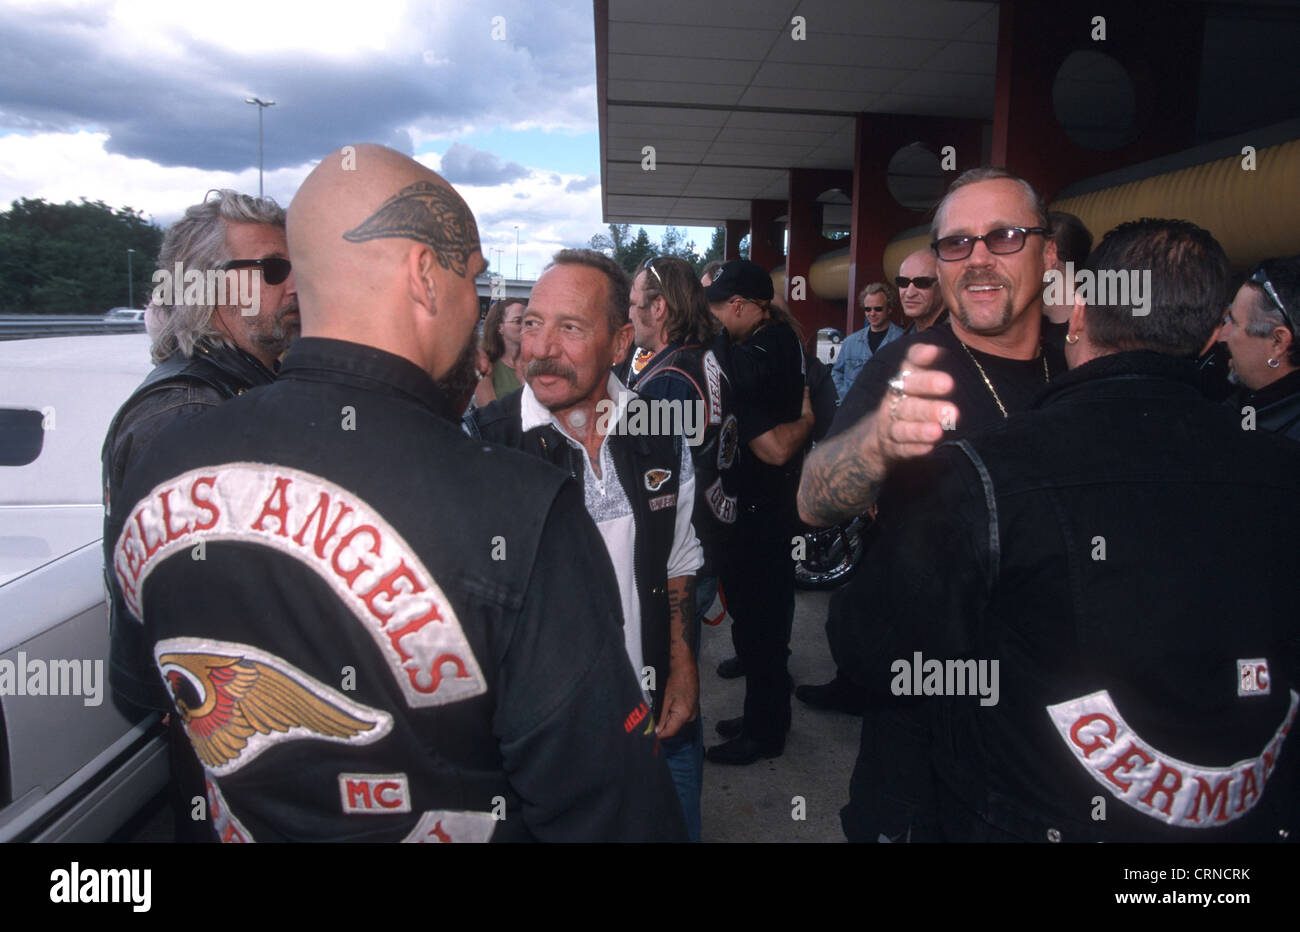 Hells Angels News Berlin